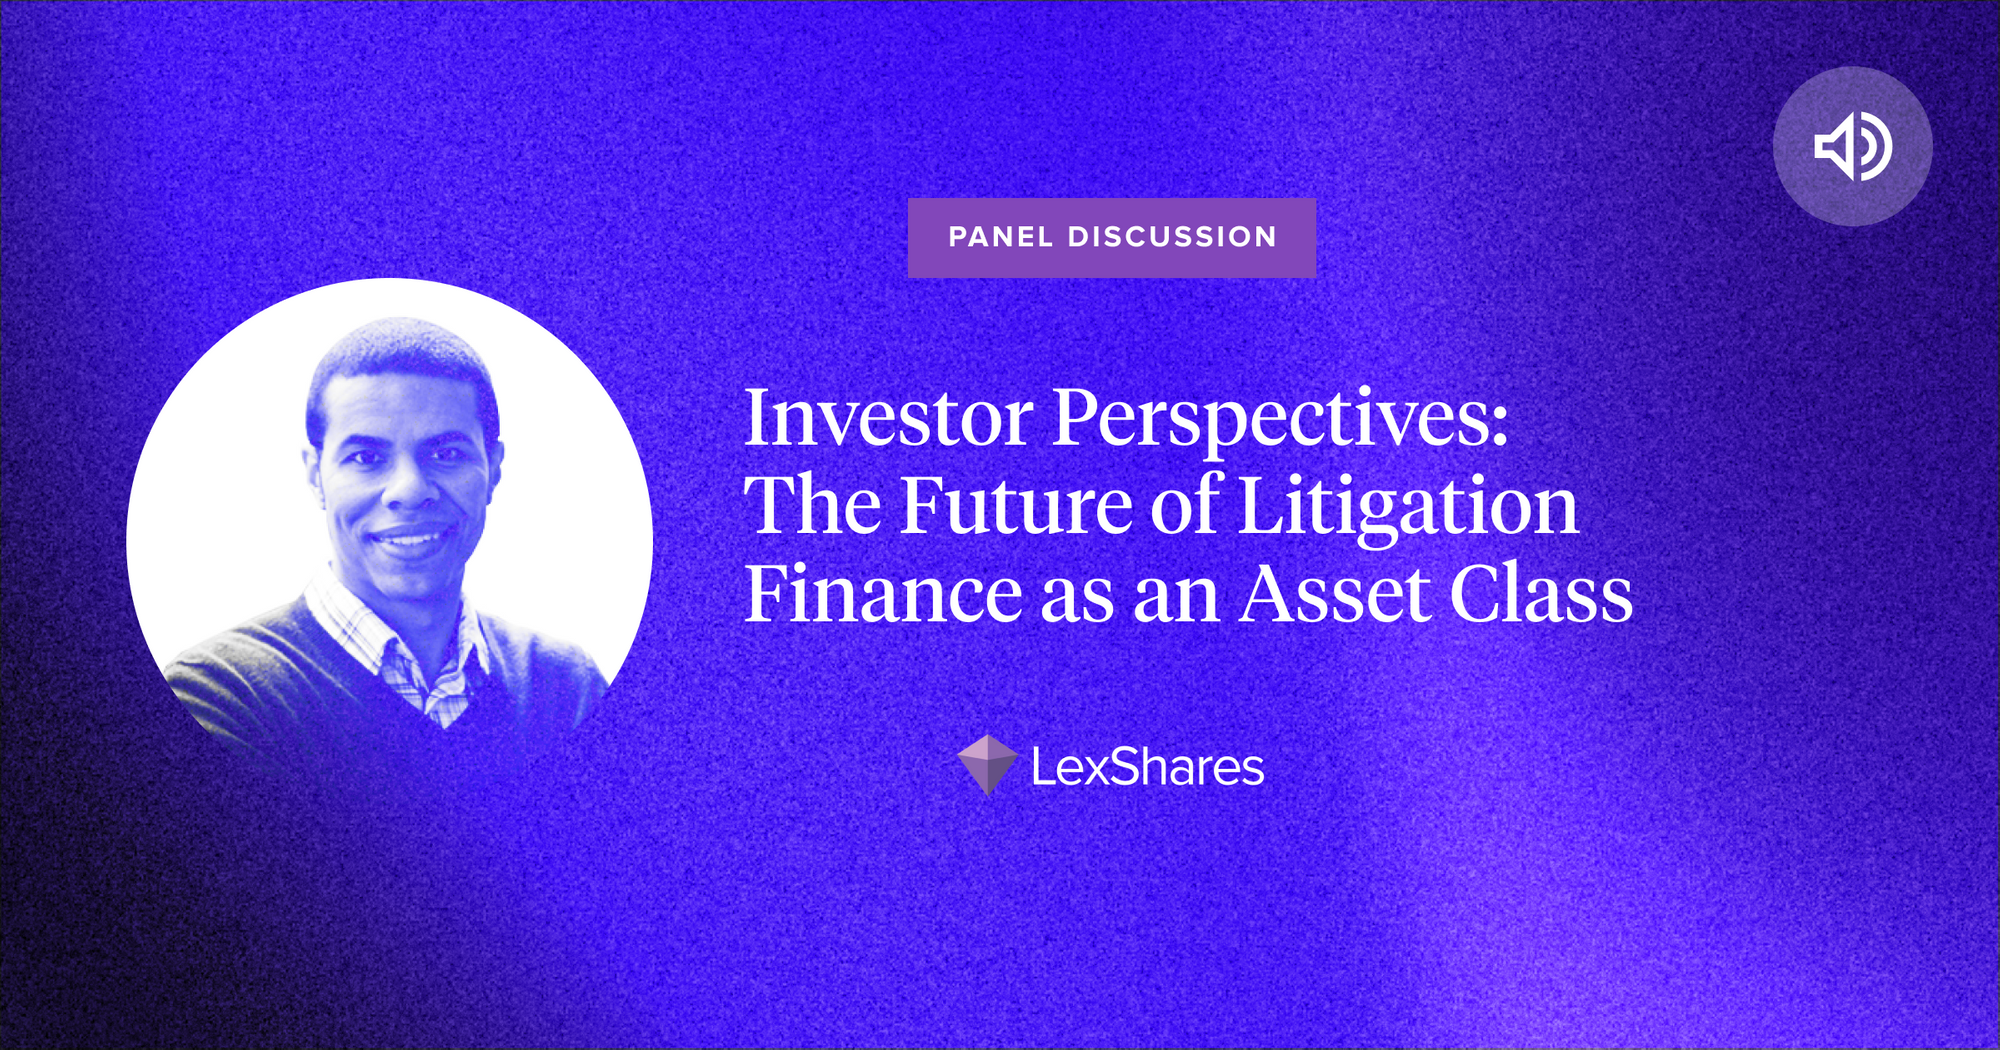 As Alternative Investing Grows, How Will Litigation Finance Evolve?